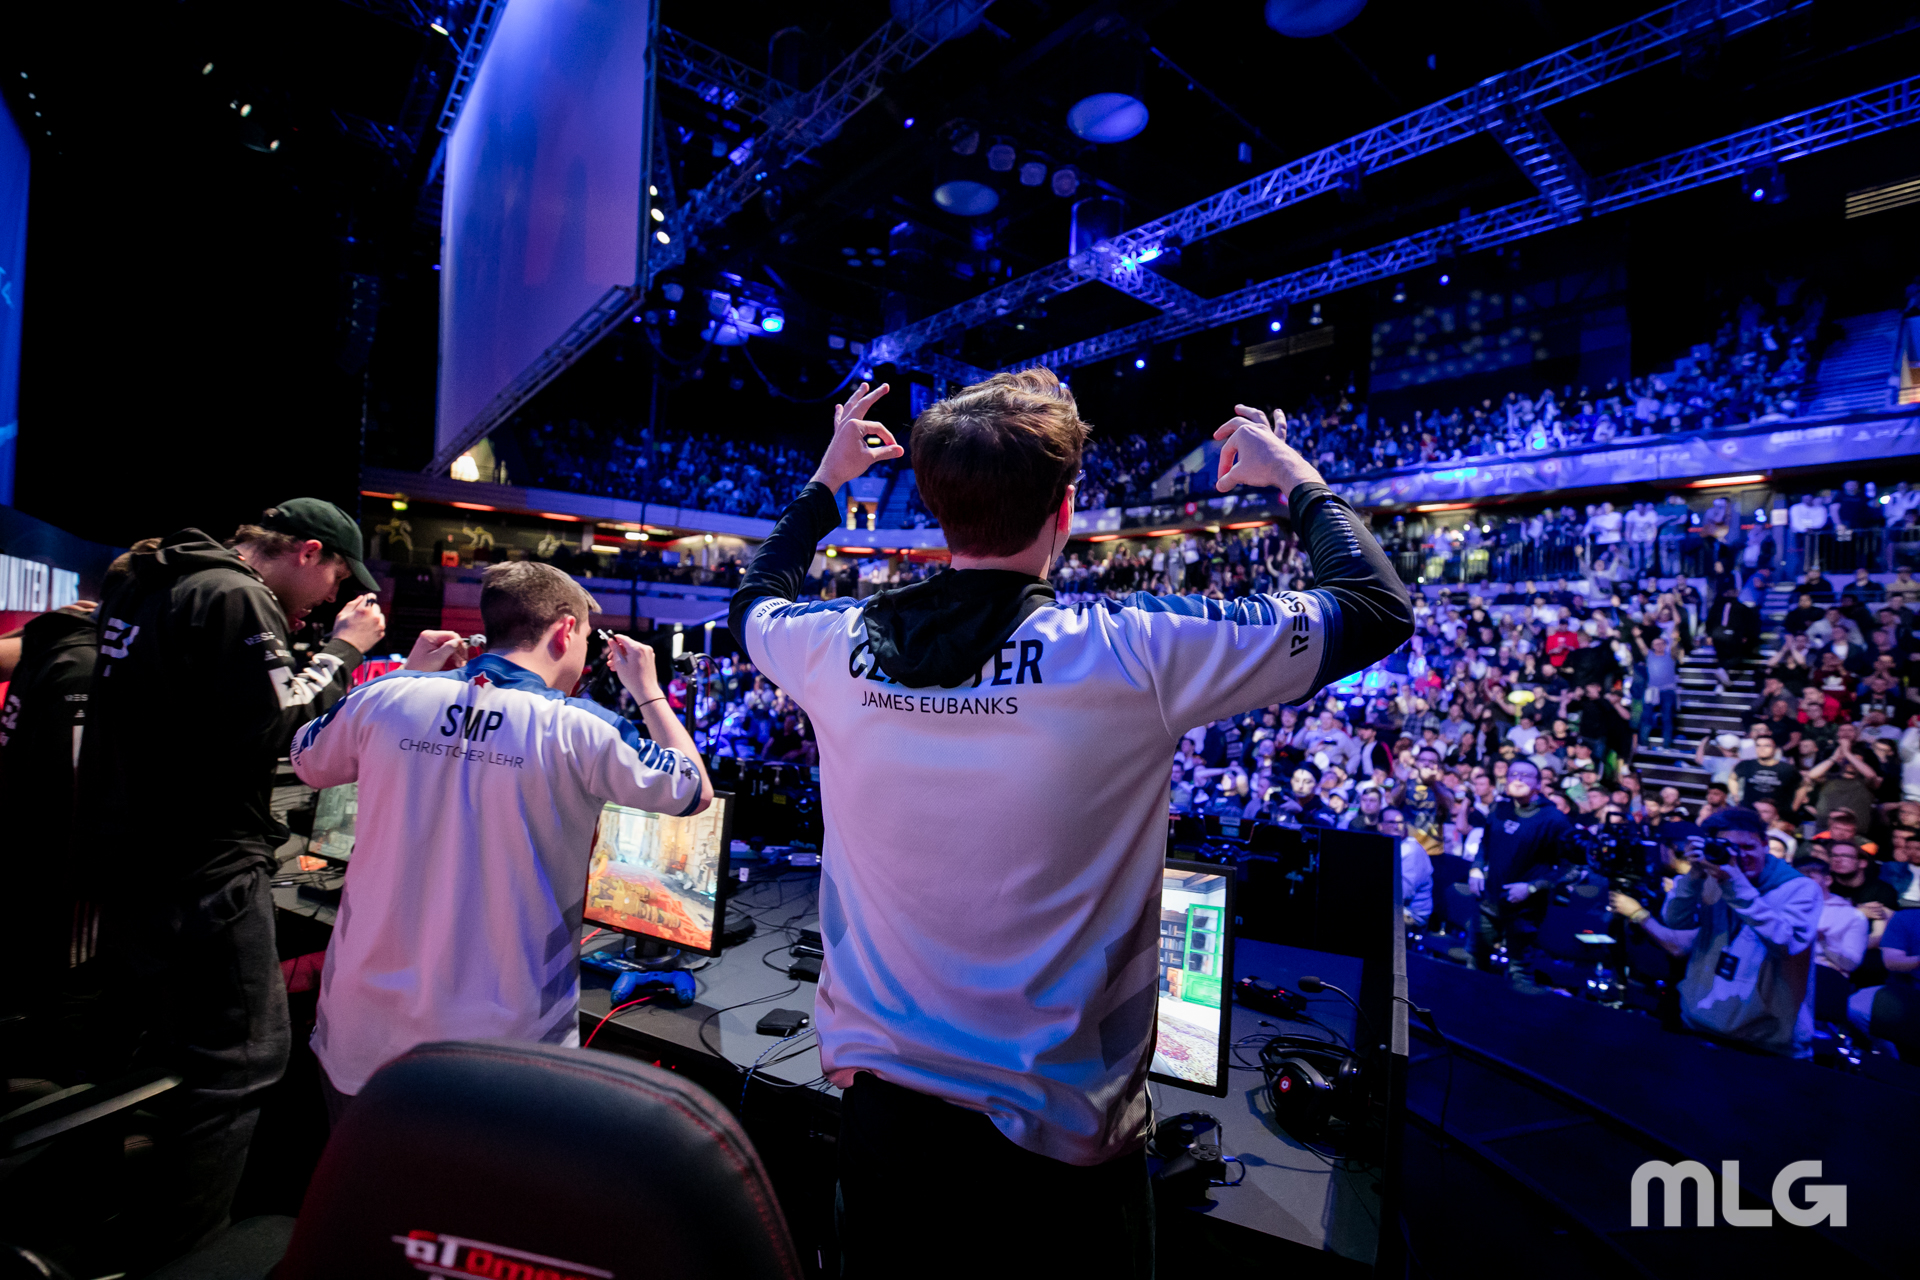 Simp and Clayster after winning a match